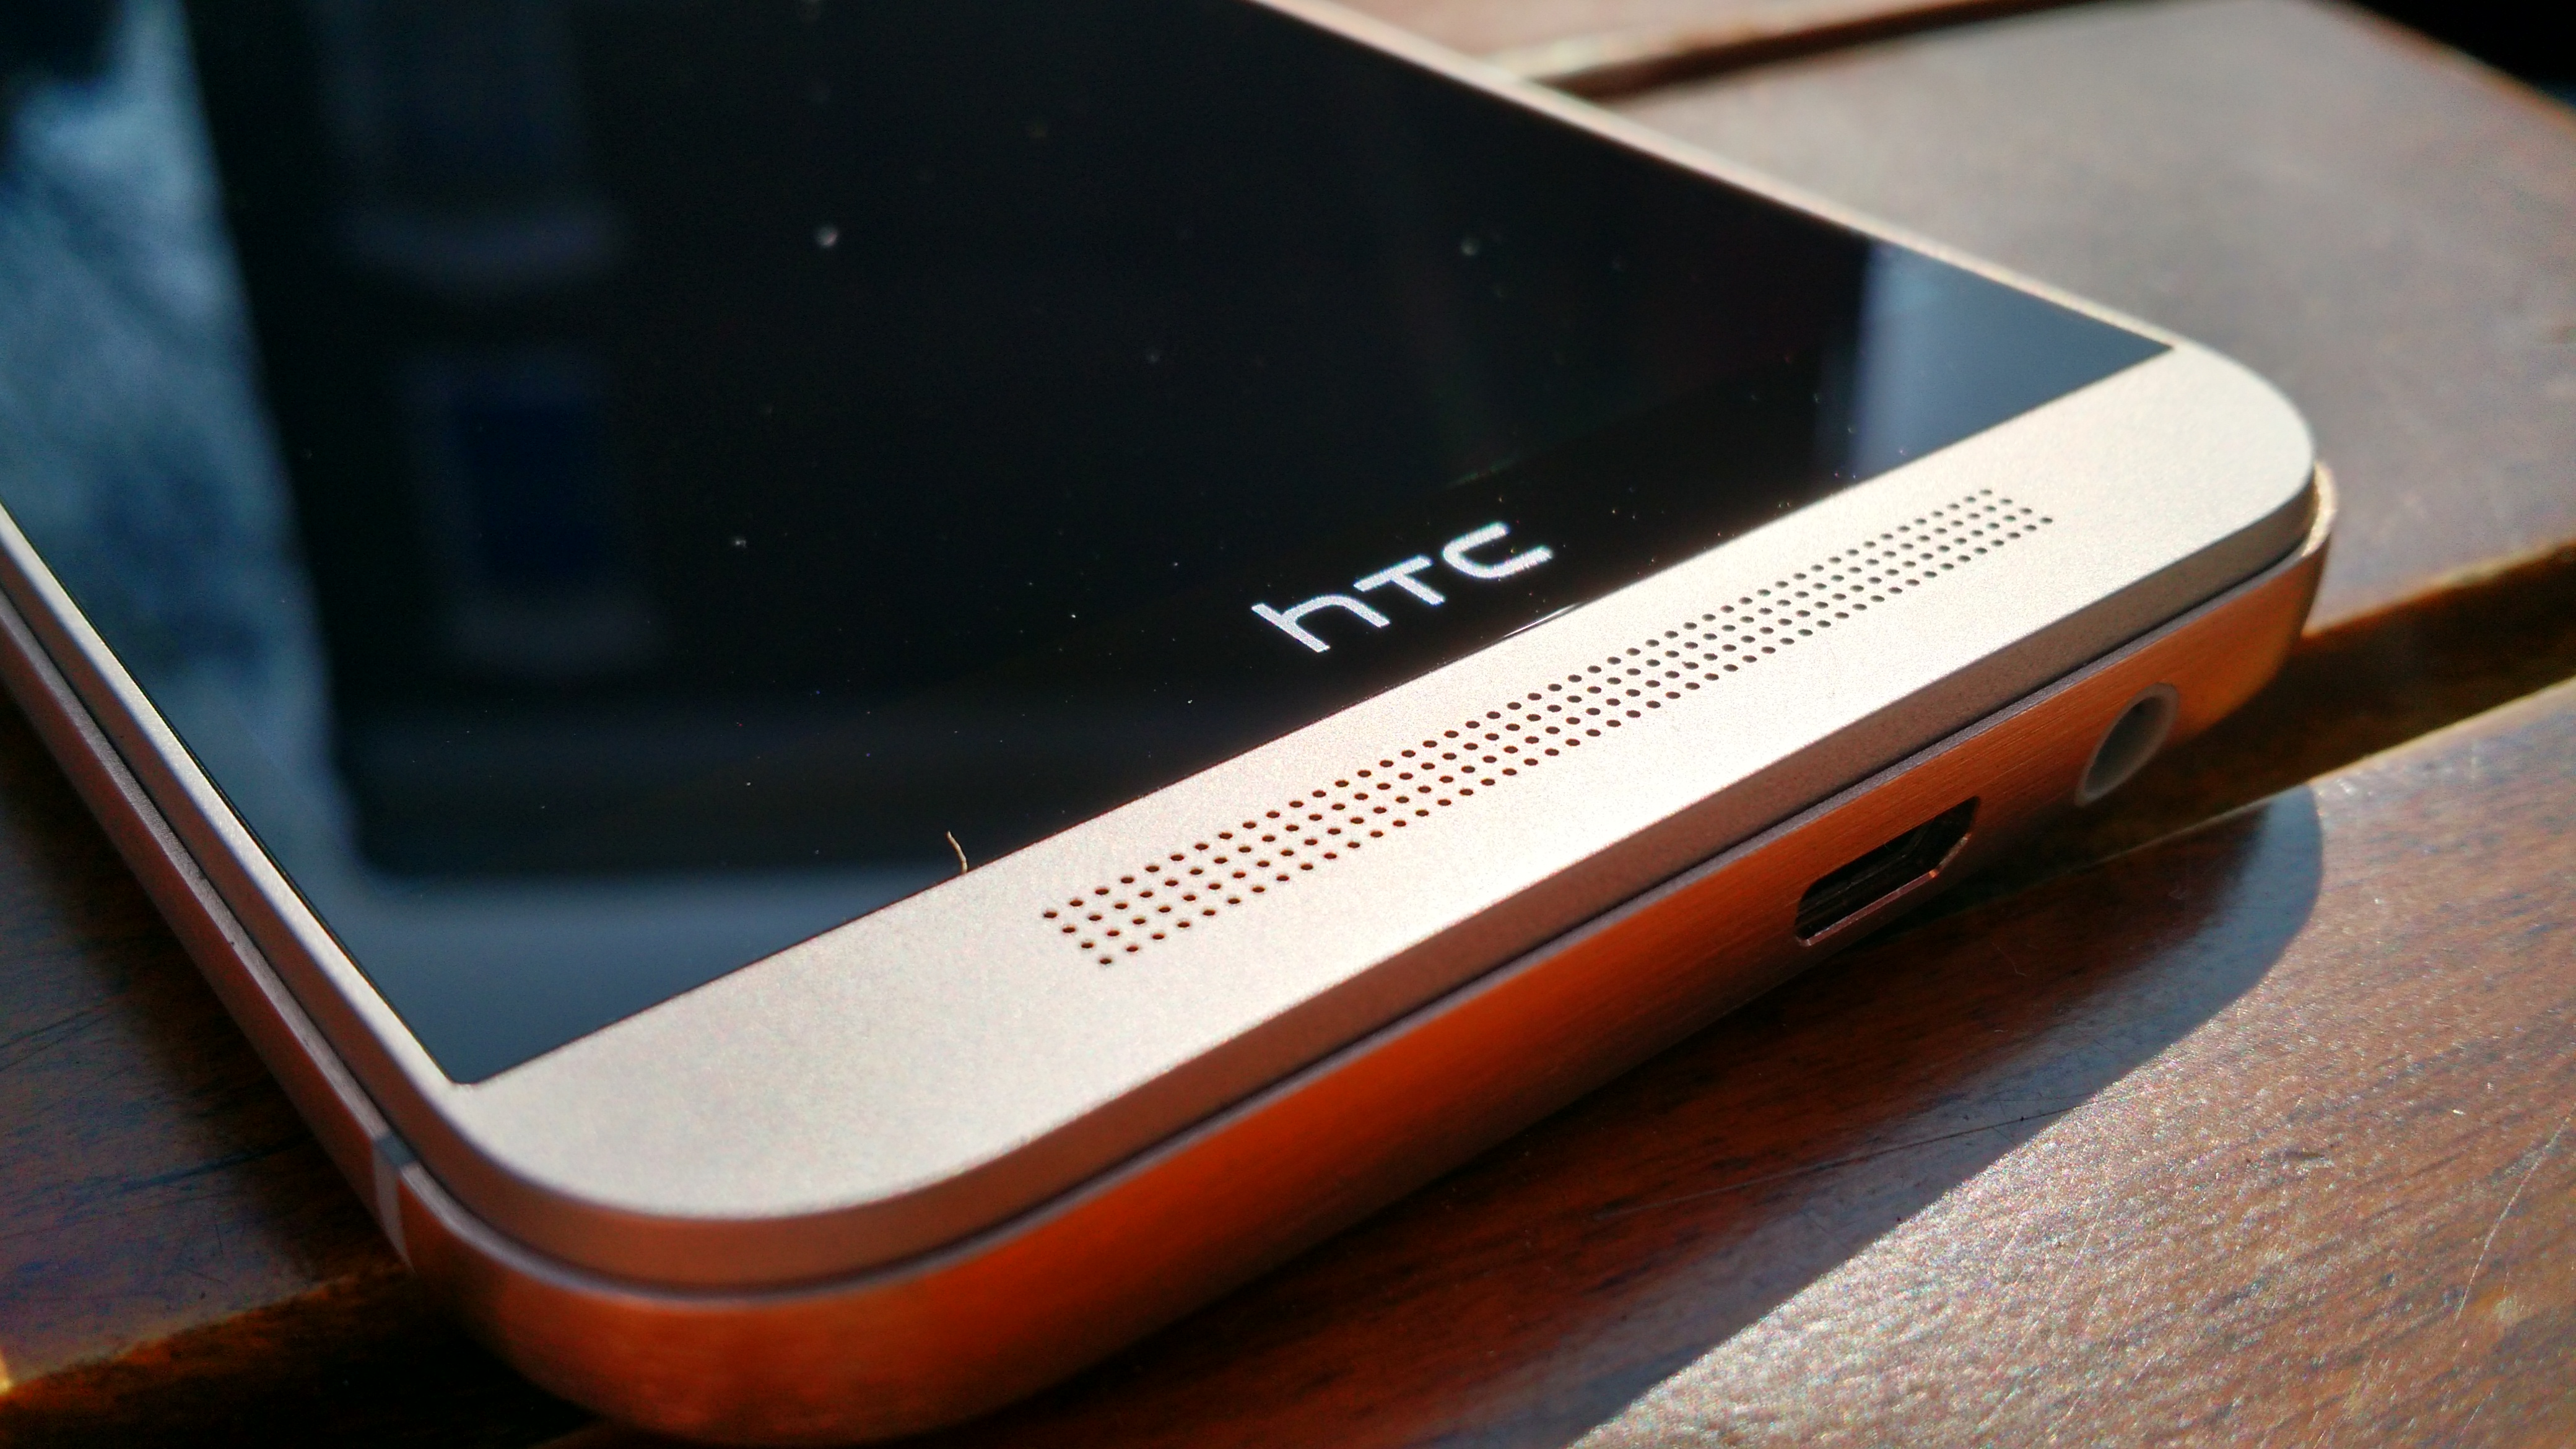 Htc One M9 Review An Incredibly Capable Handset But Not Exciting Img 20150320 131709090 Hdr